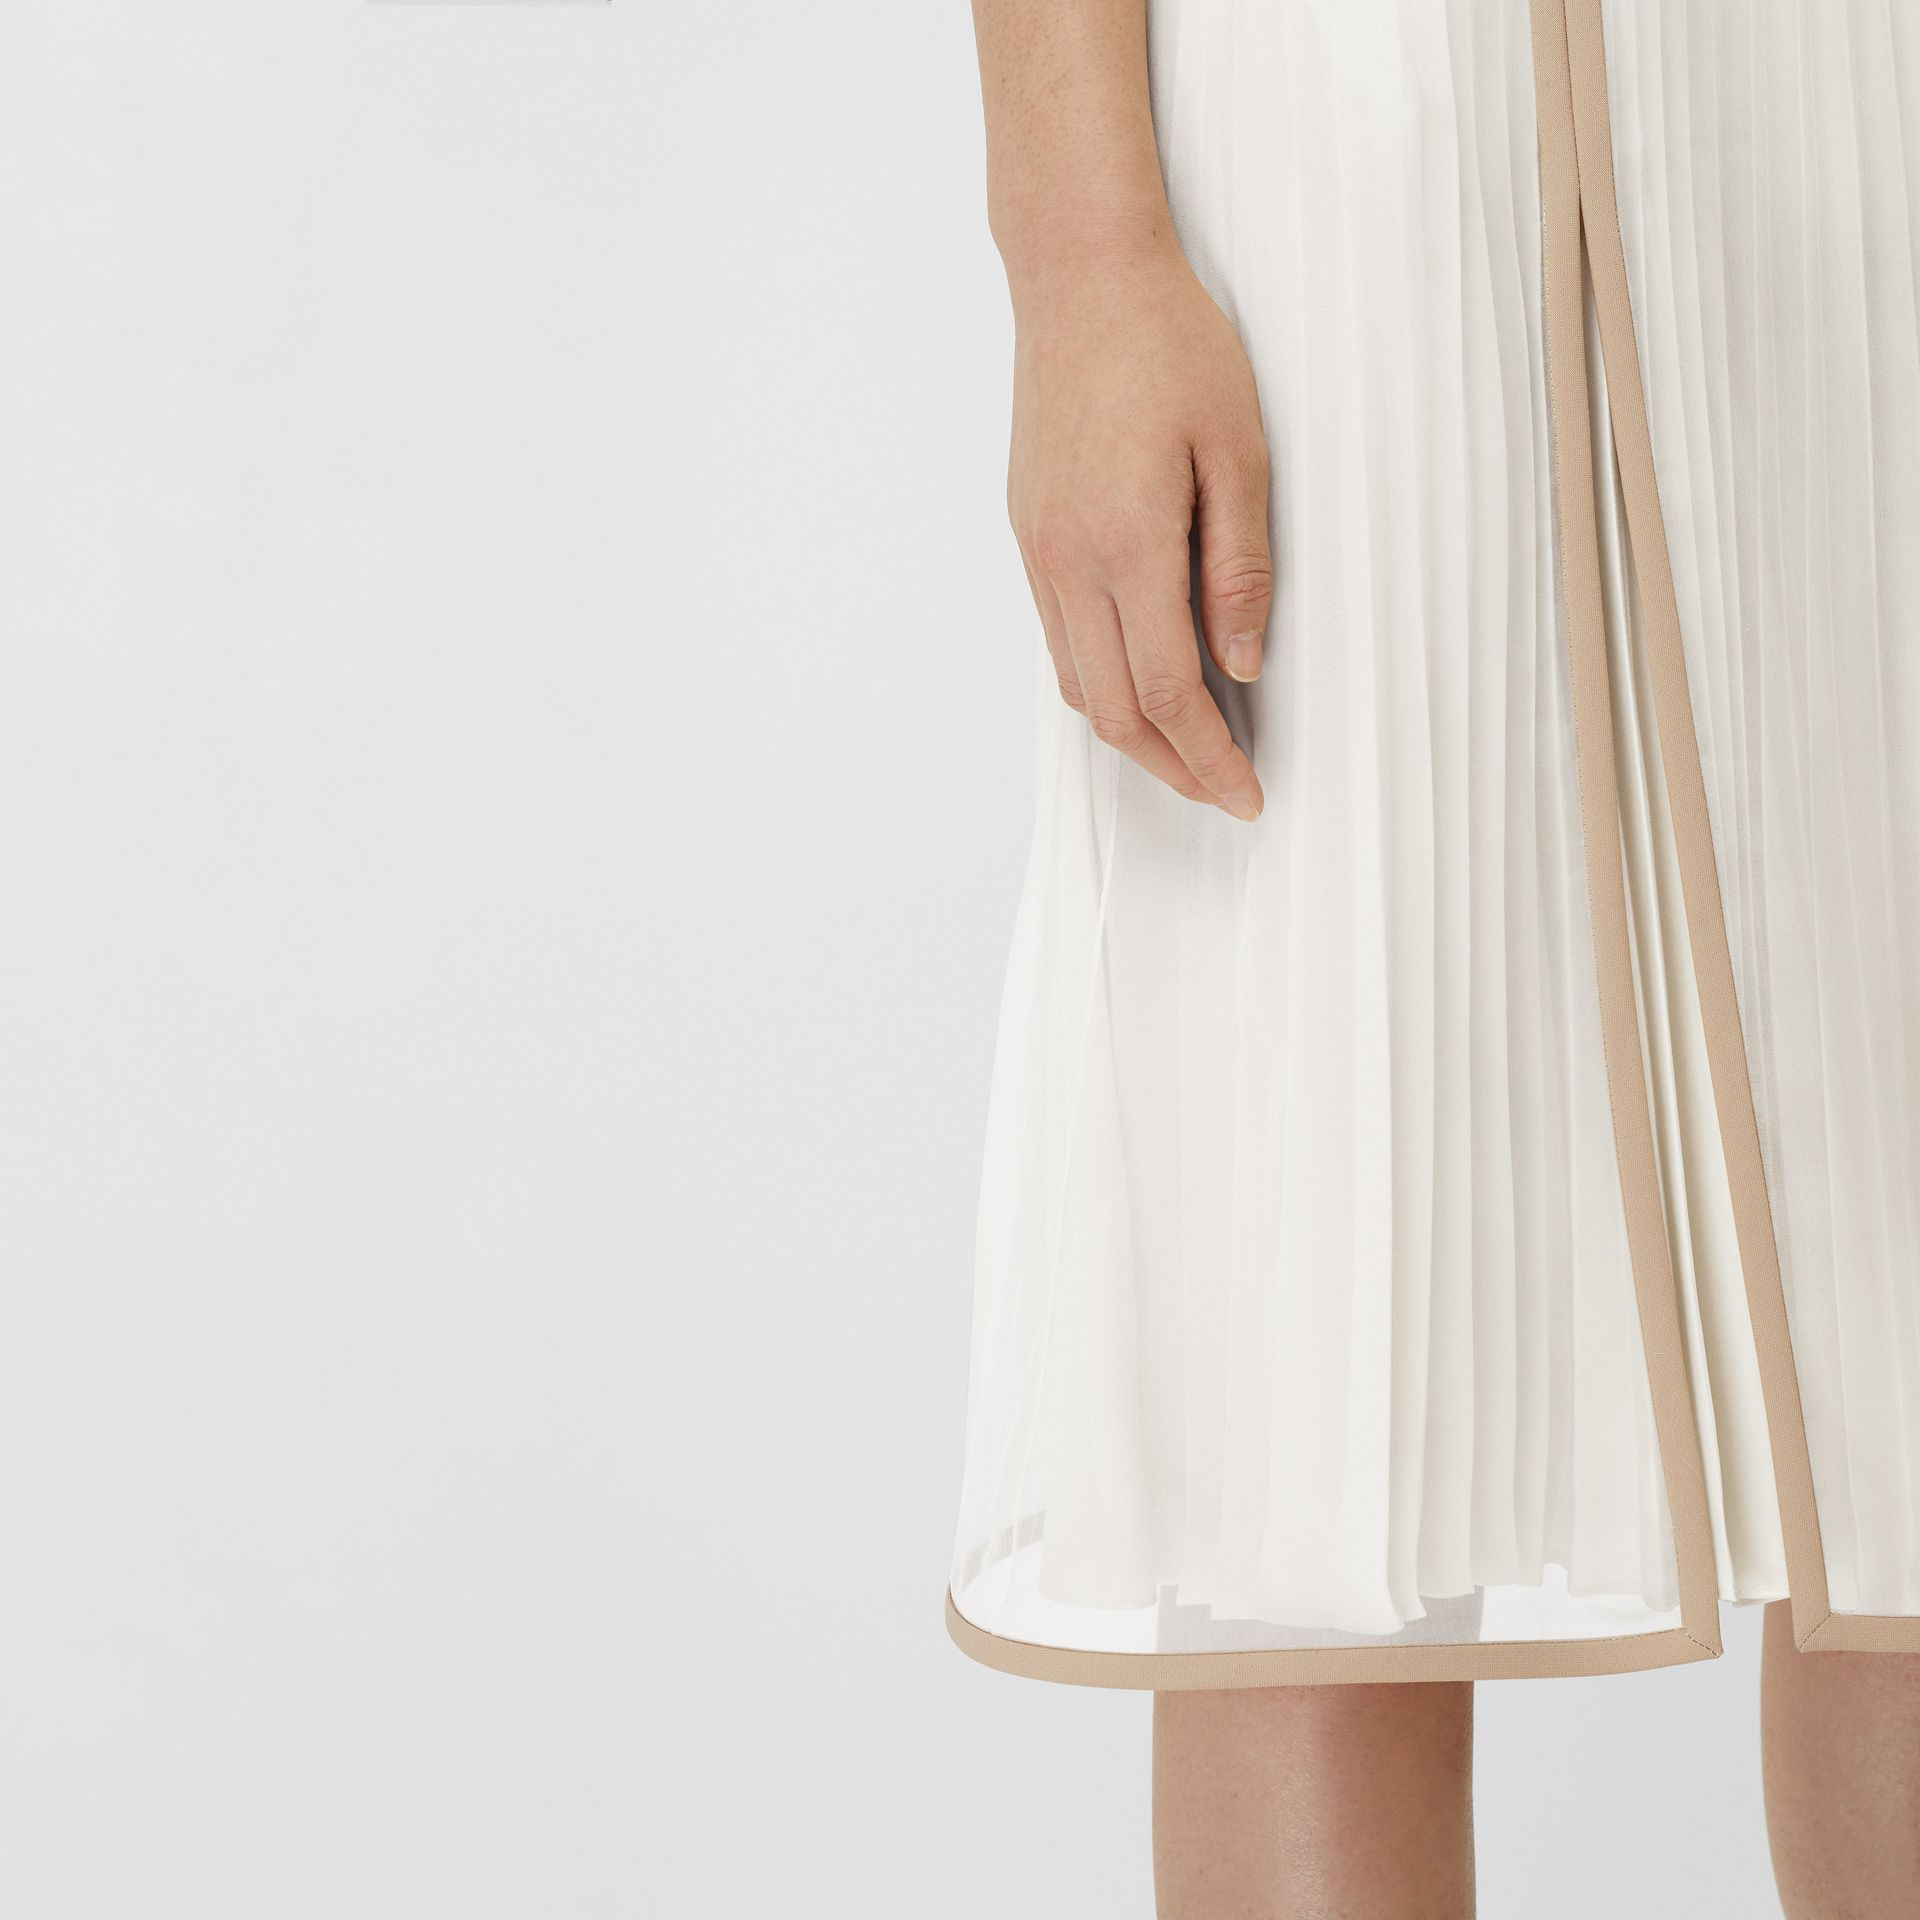 Chiffon Panel Silk Pleated Skirt in Magnolia - Women | Burberry - gallery image 1